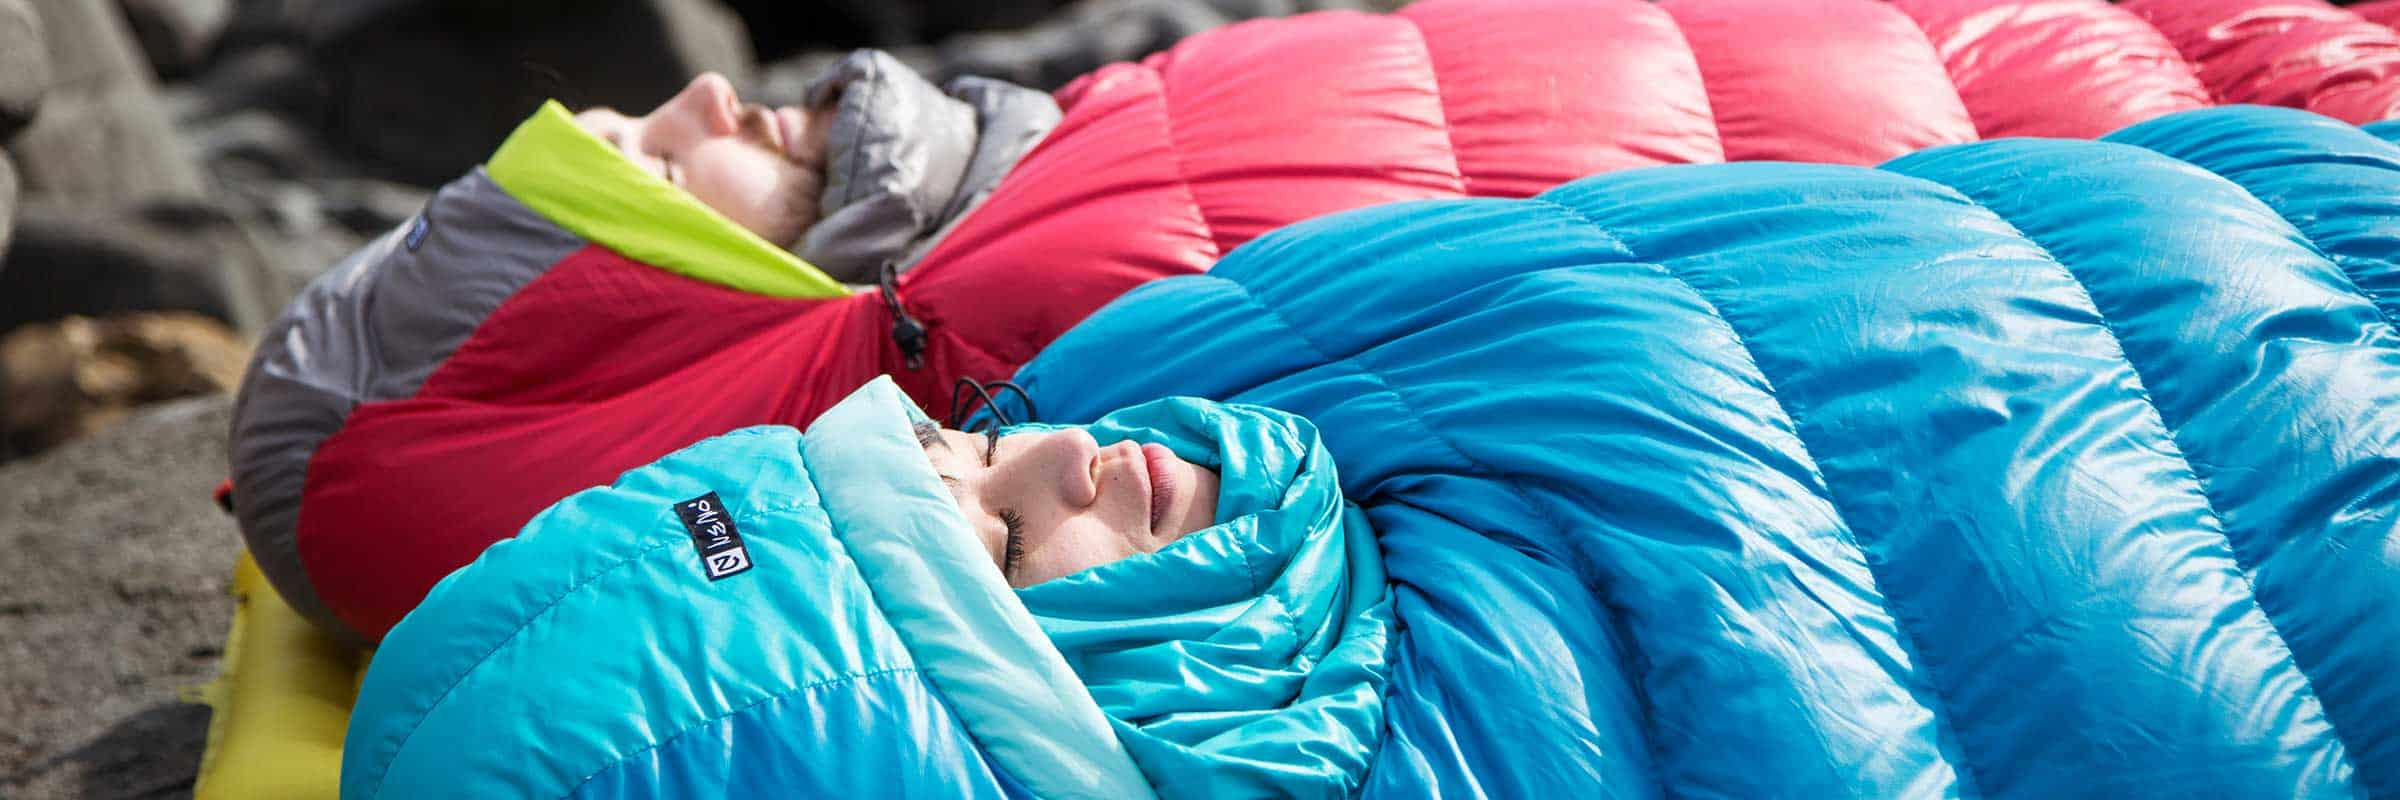 Big Agnes, Camping, Icebreaker, Marmot, Mountain Hardwear, NEMO Equipment, Rab, Sea to Summit, Sleeping Bags, Therm-a-Rest. How to Choose a Sleeping Bag for Camping